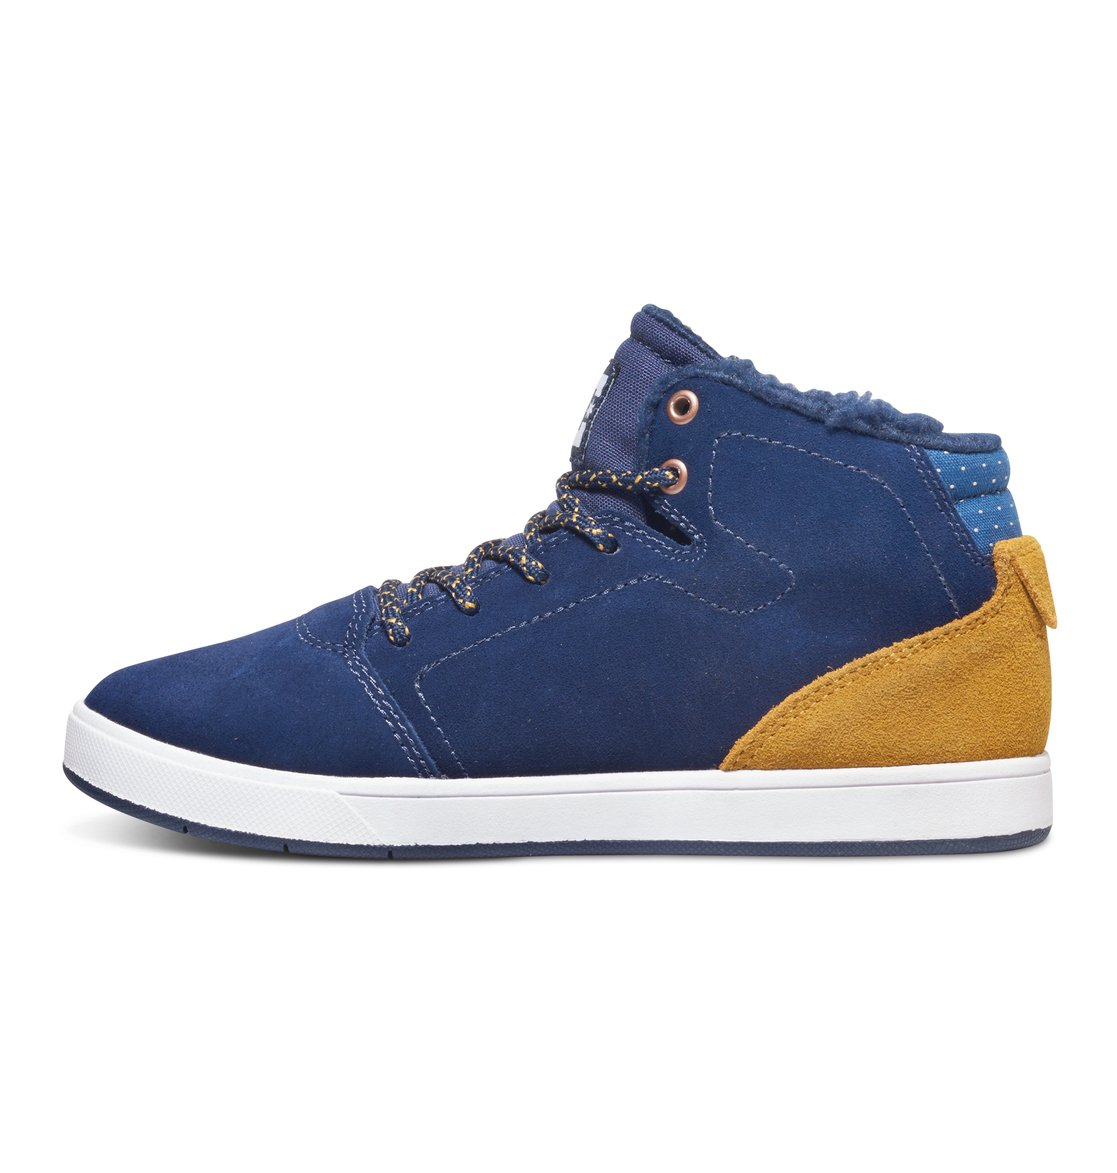 Free shipping BOTH ways on high top shoes for kids, from our vast selection of styles. Fast delivery, and 24/7/ real-person service with a smile. Click or call